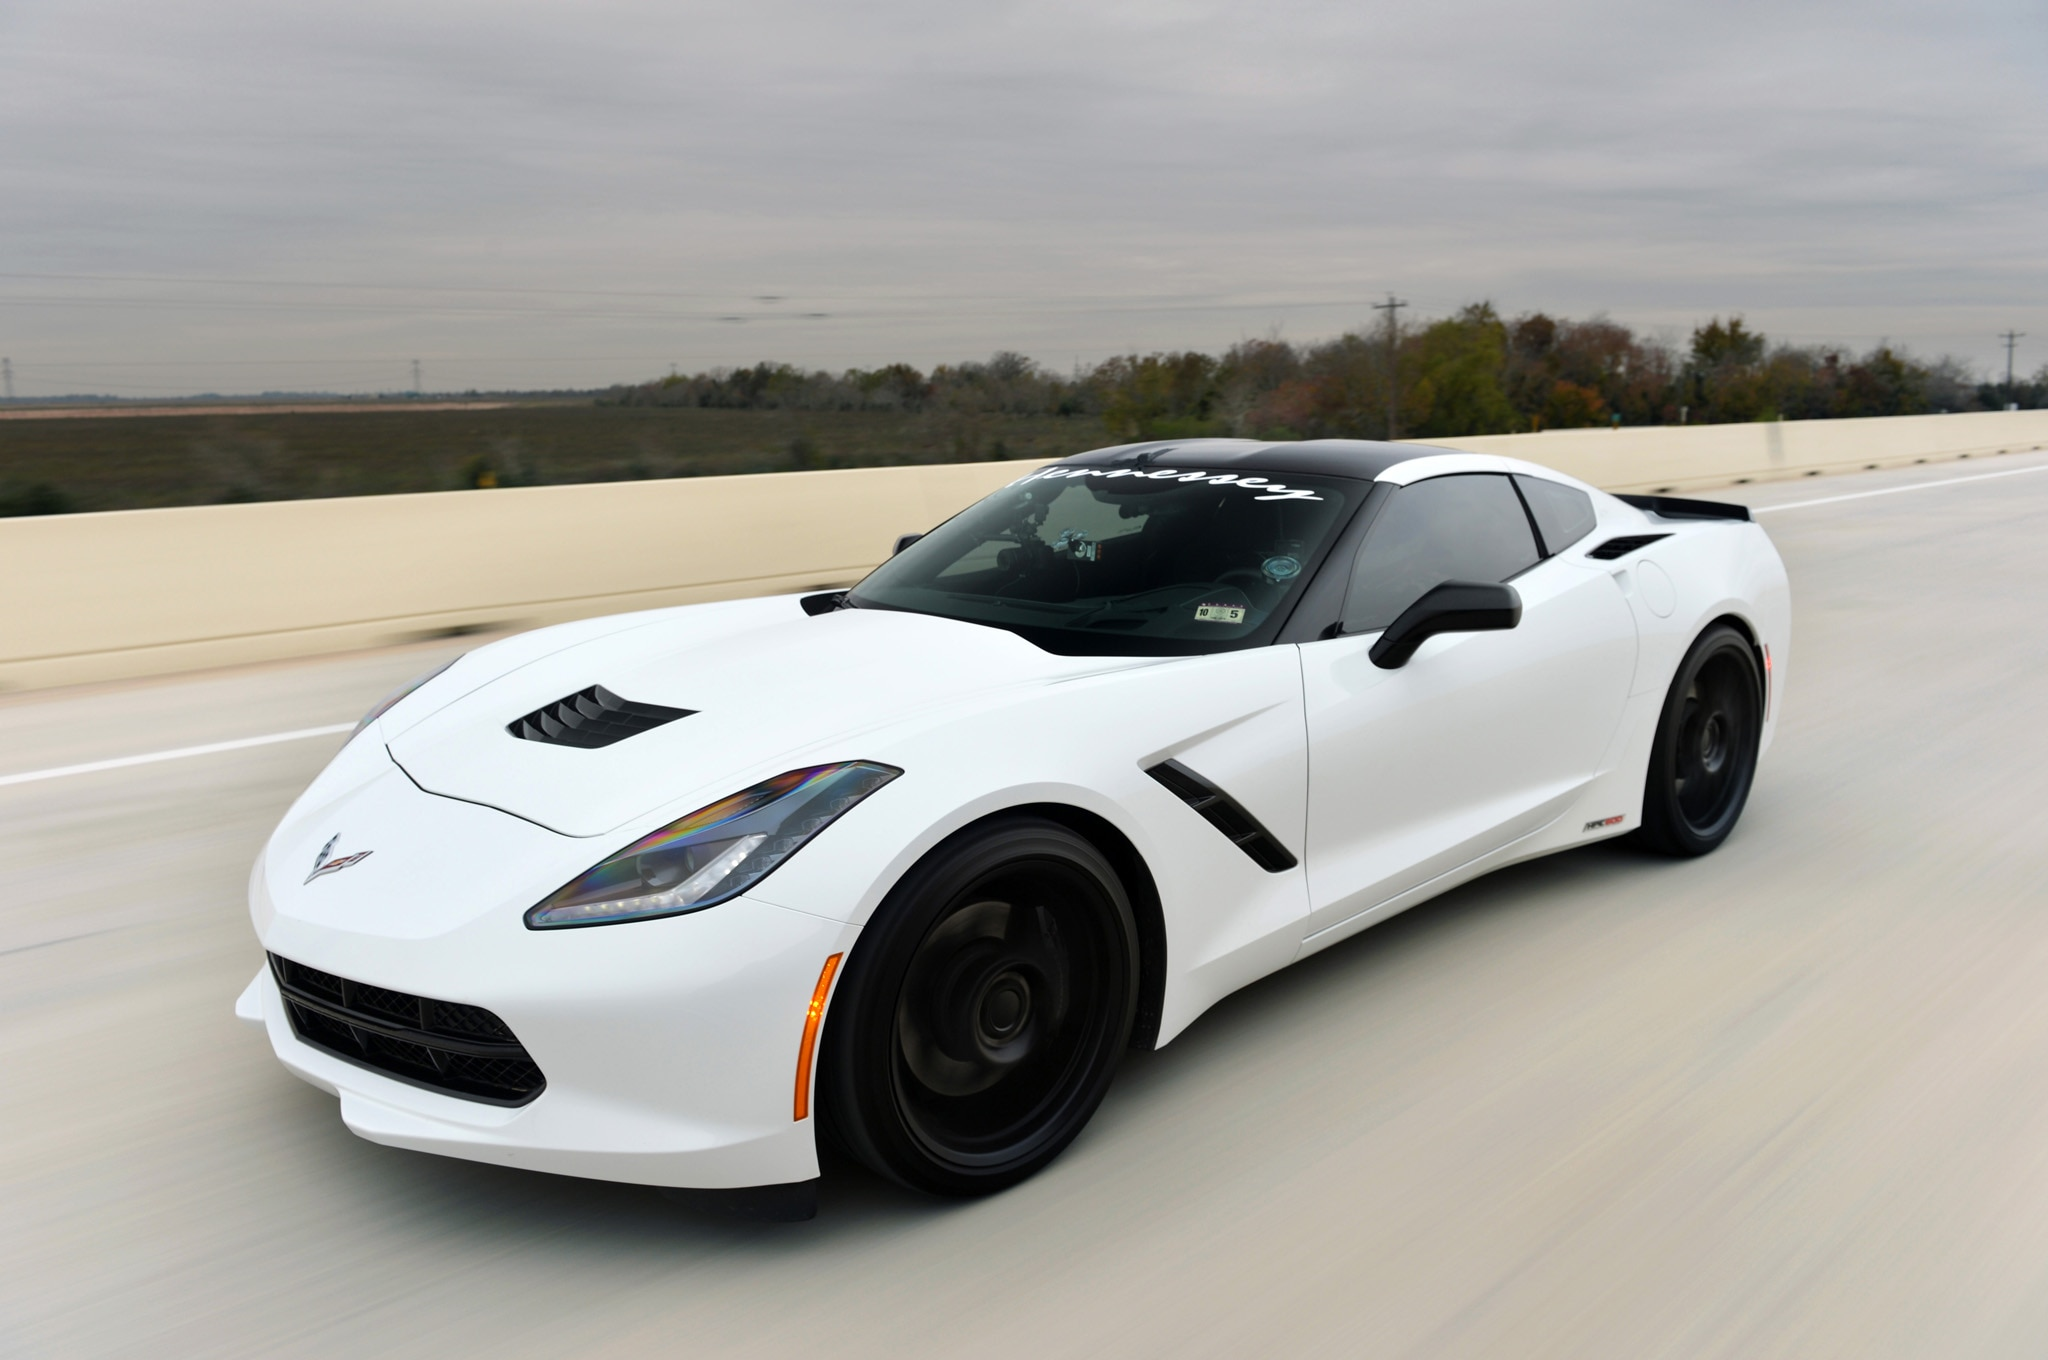 HennesseyTuned 2014 Chevrolet Corvette Eclipses 200 MPH on Texas